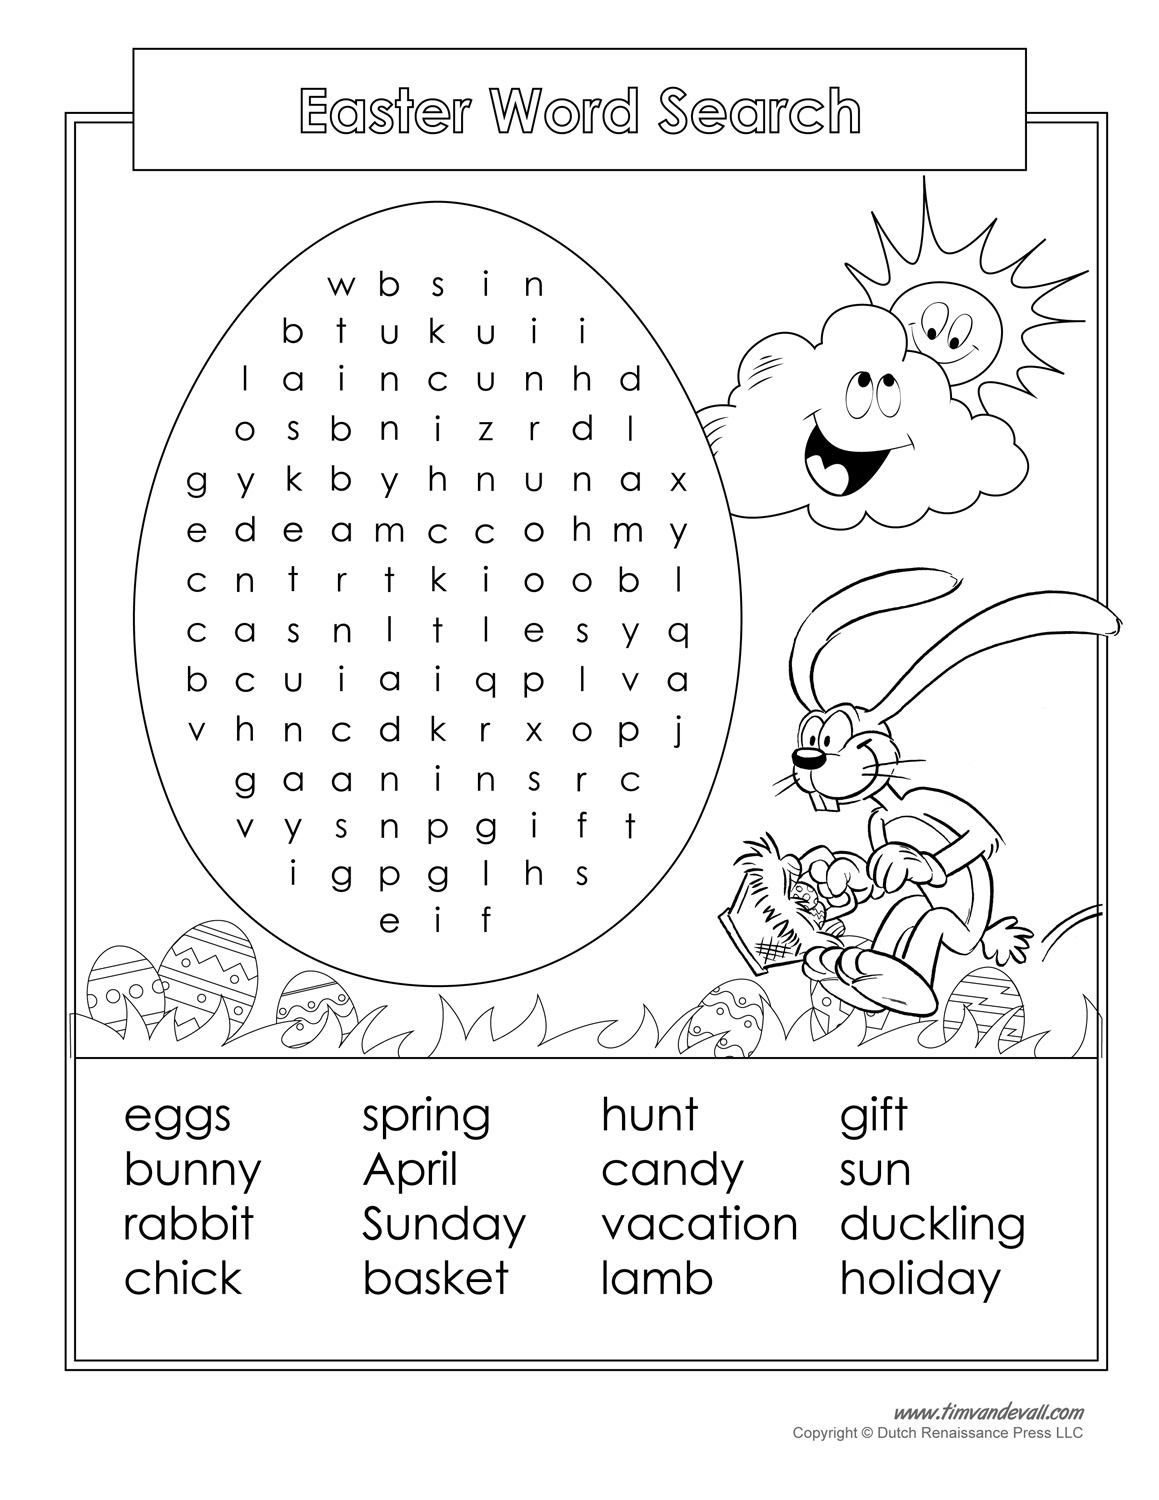 small resolution of Easter Word Search Printable - Tim's Printables